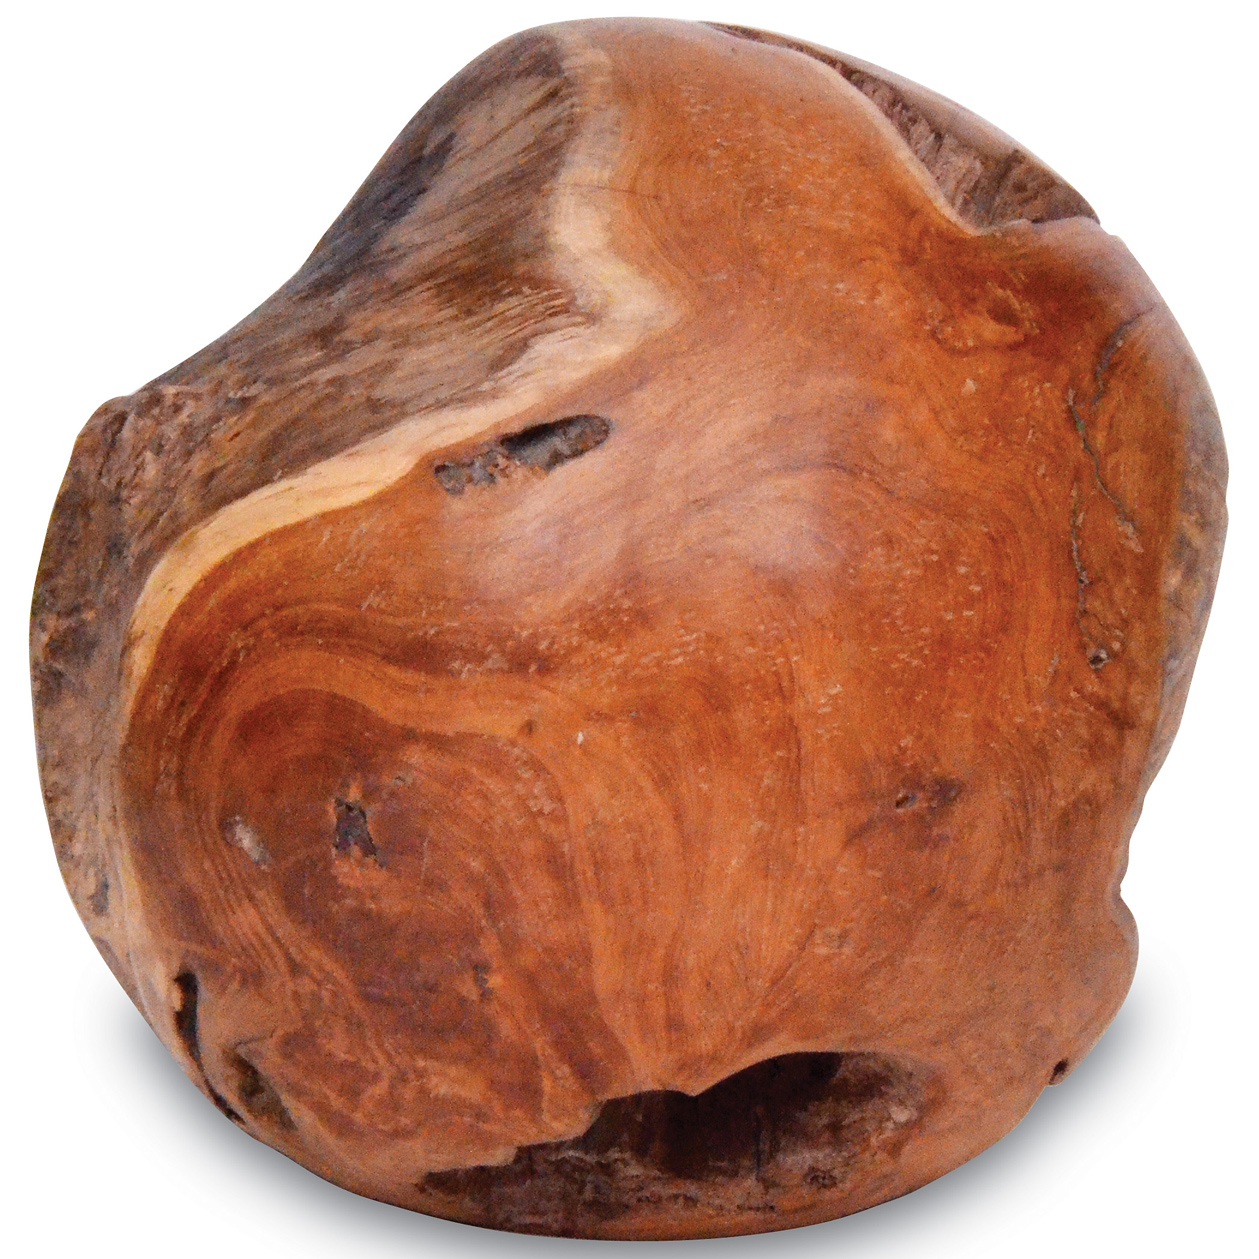 Cabo Coastal Beach Teak Wood Orb Sculpture - 24 Inch